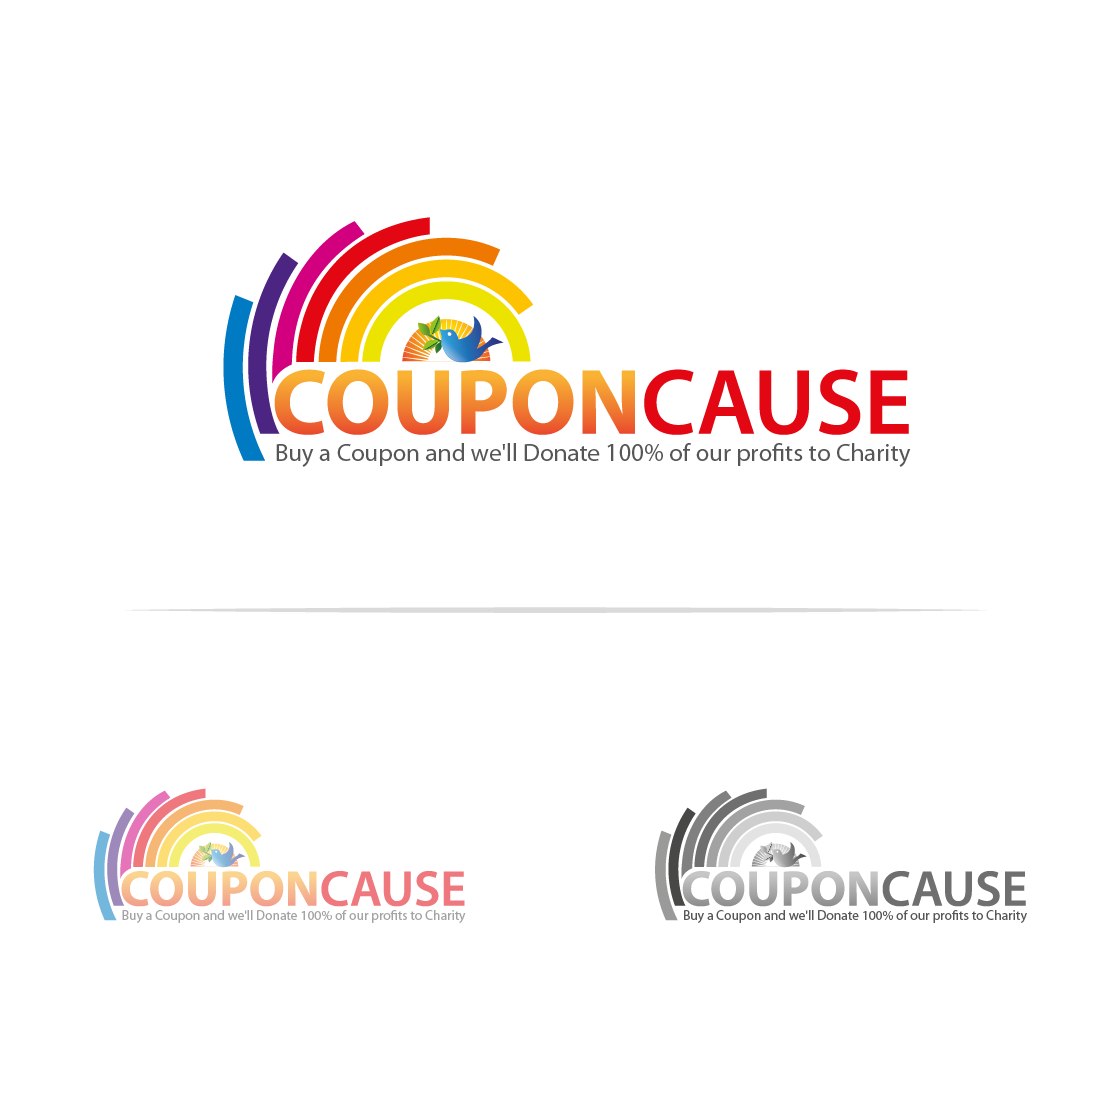 Help CouponCause with a new logo